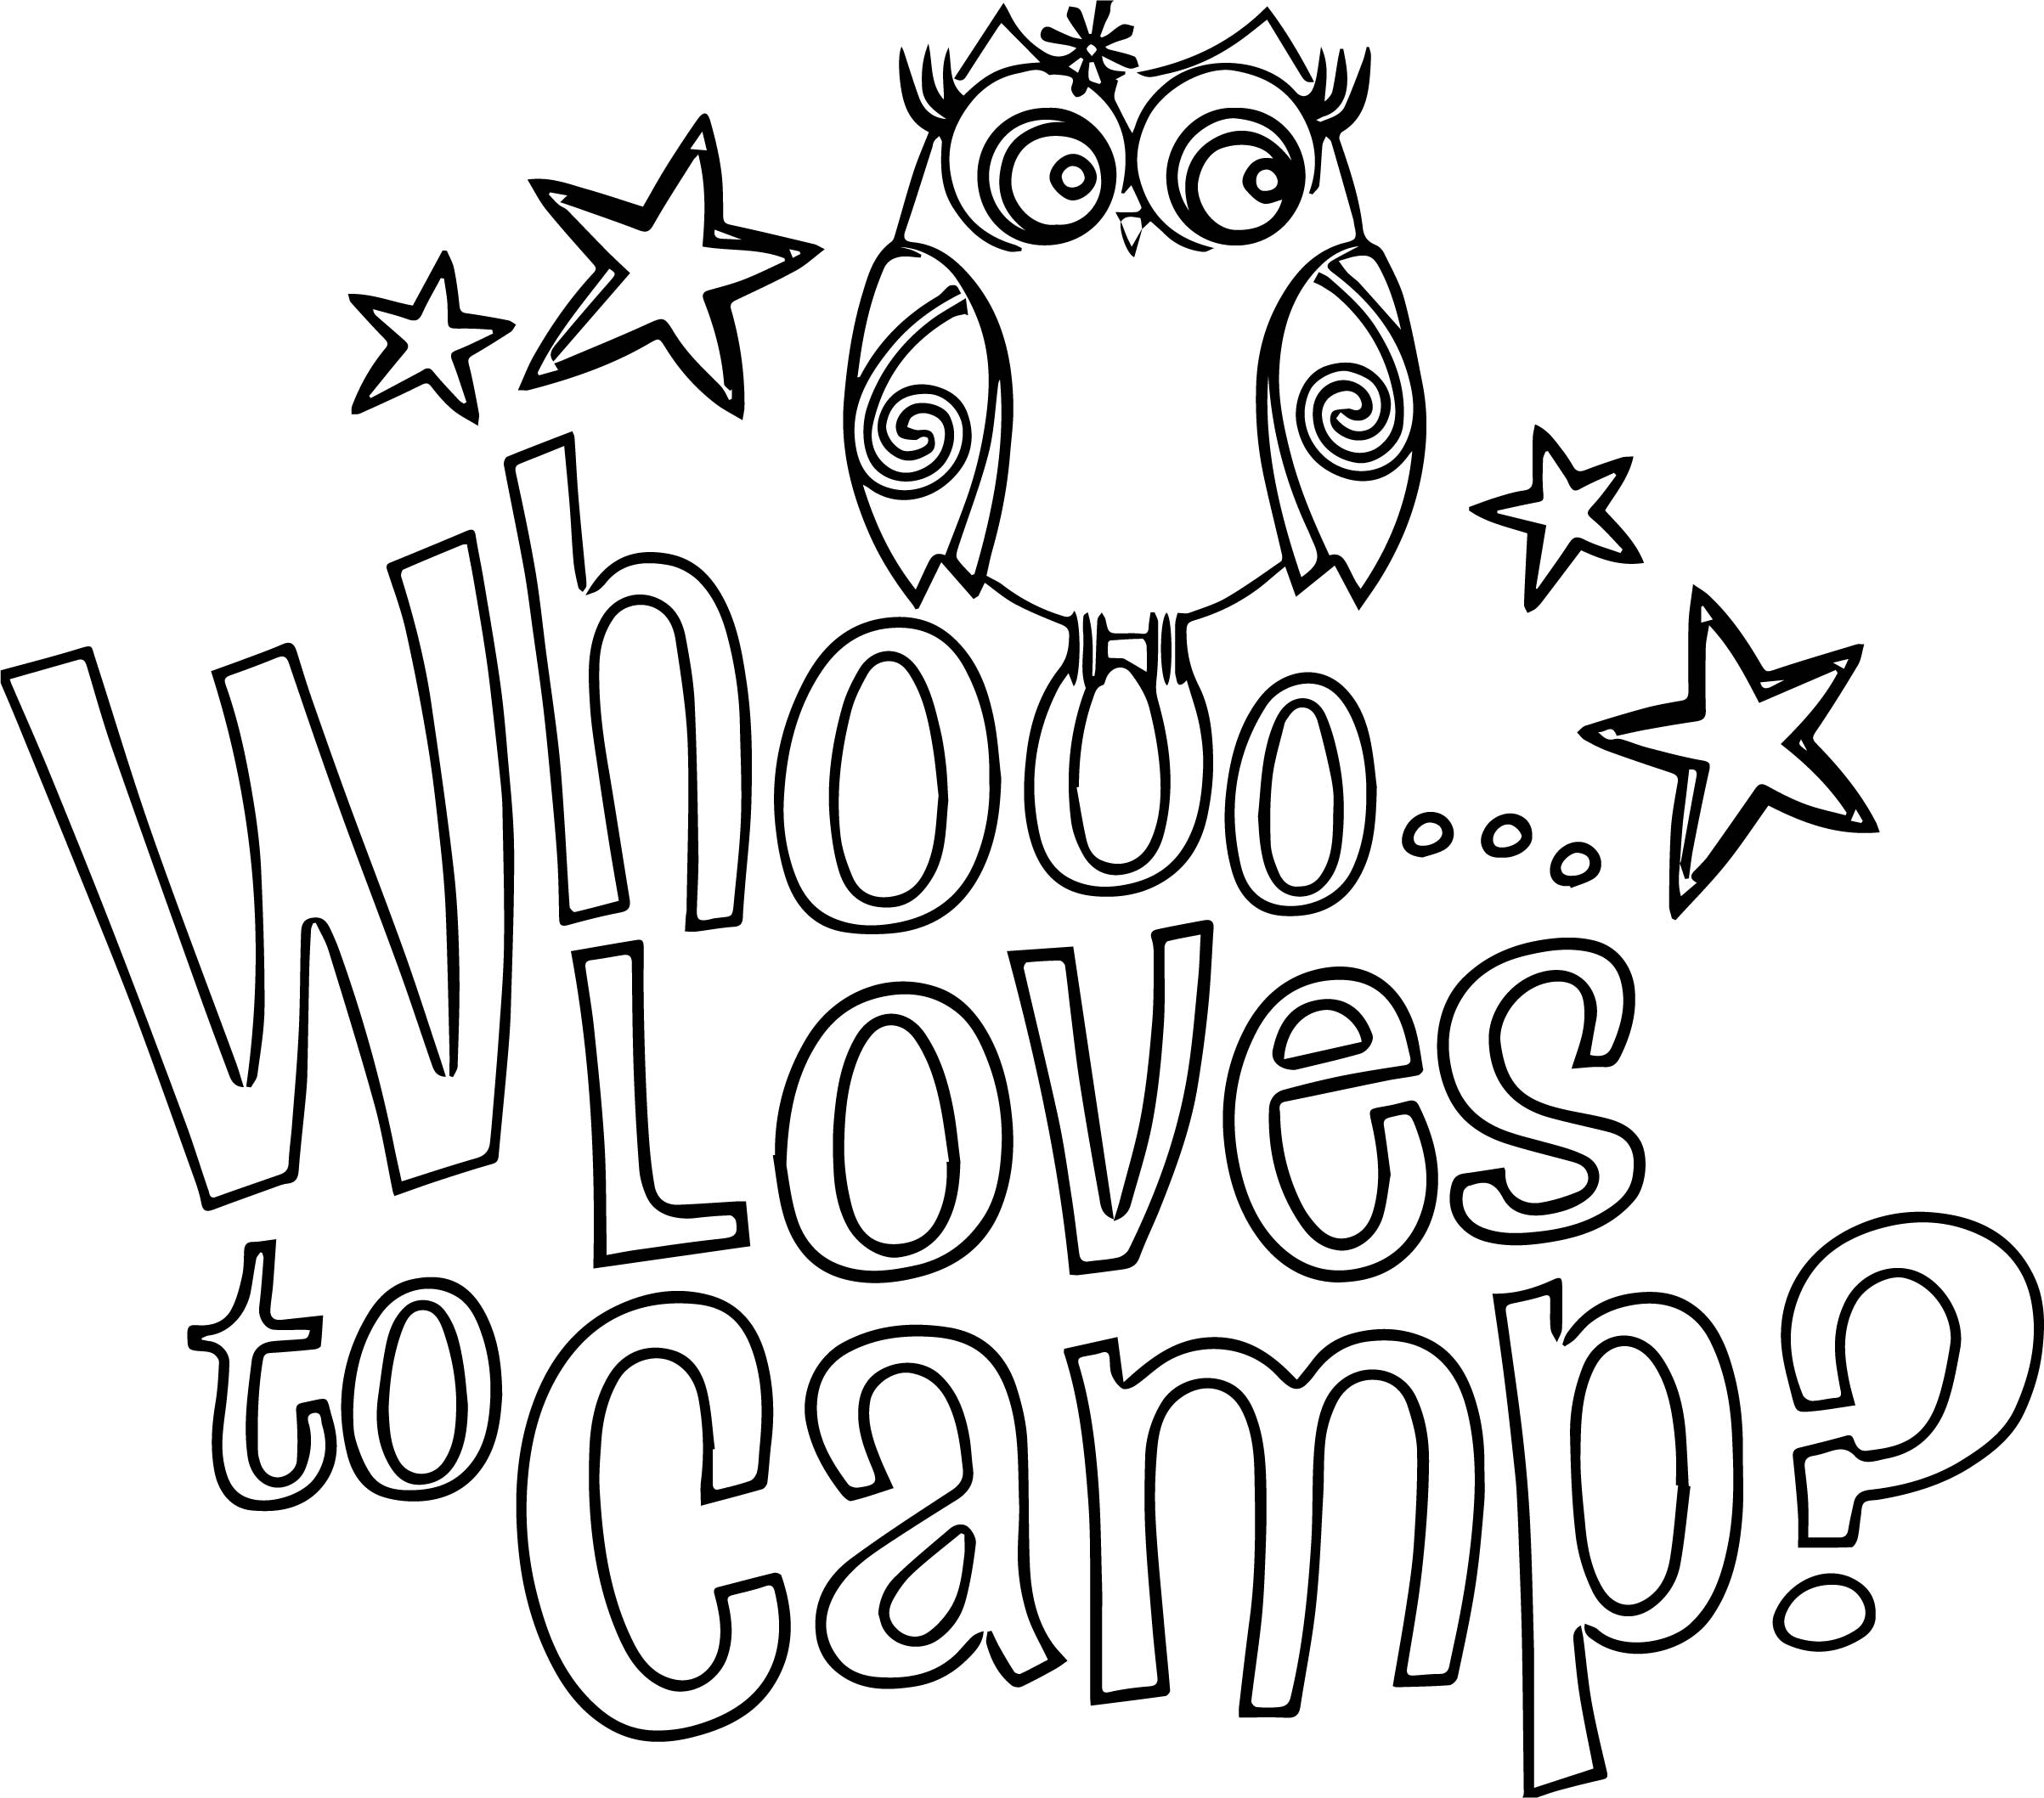 Girl Scout Brownie Art Free Gswny Troop Camping Coloring Page ...